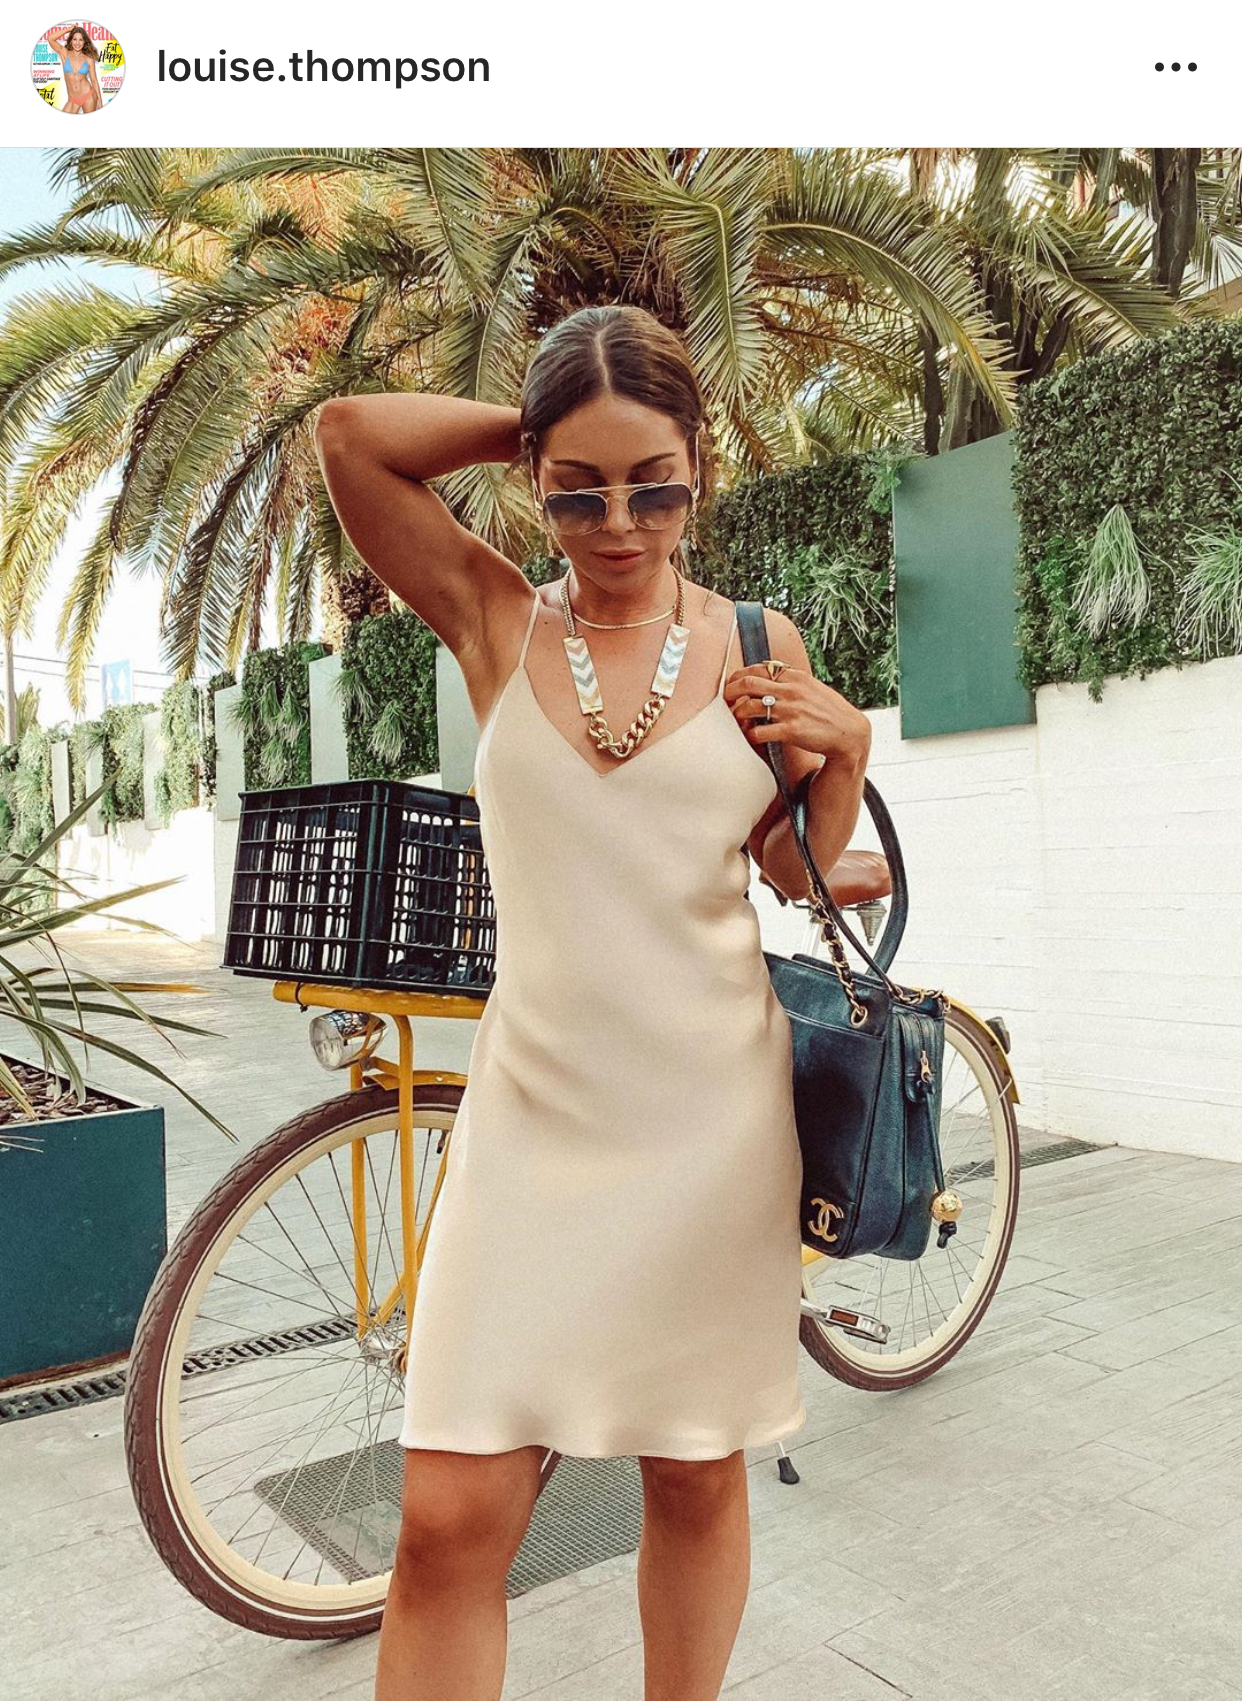 Louise Thompson wearing Shh by Sadie Pearl Chevron D'or necklace